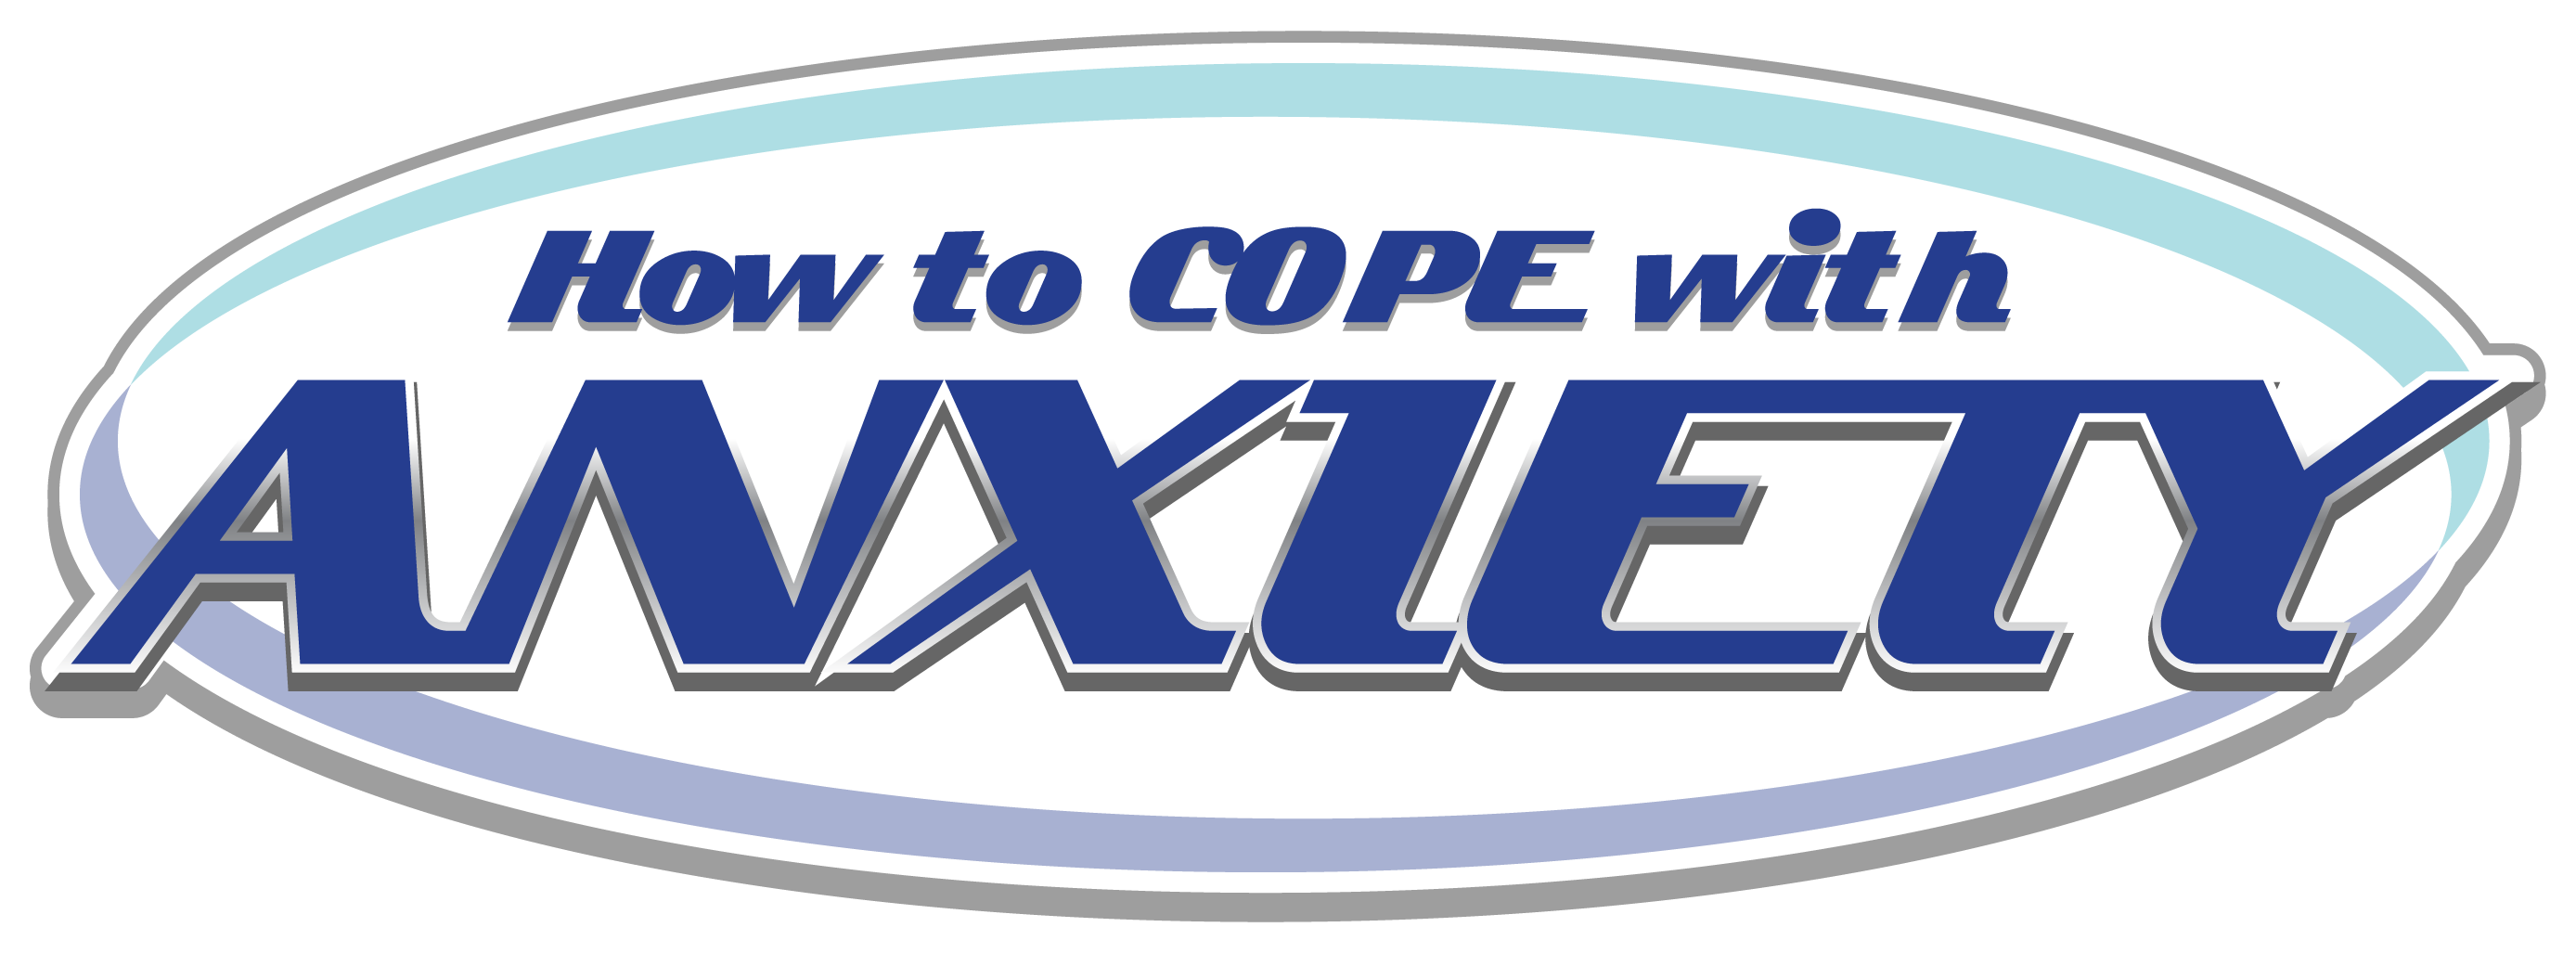 How to cope with anxiety